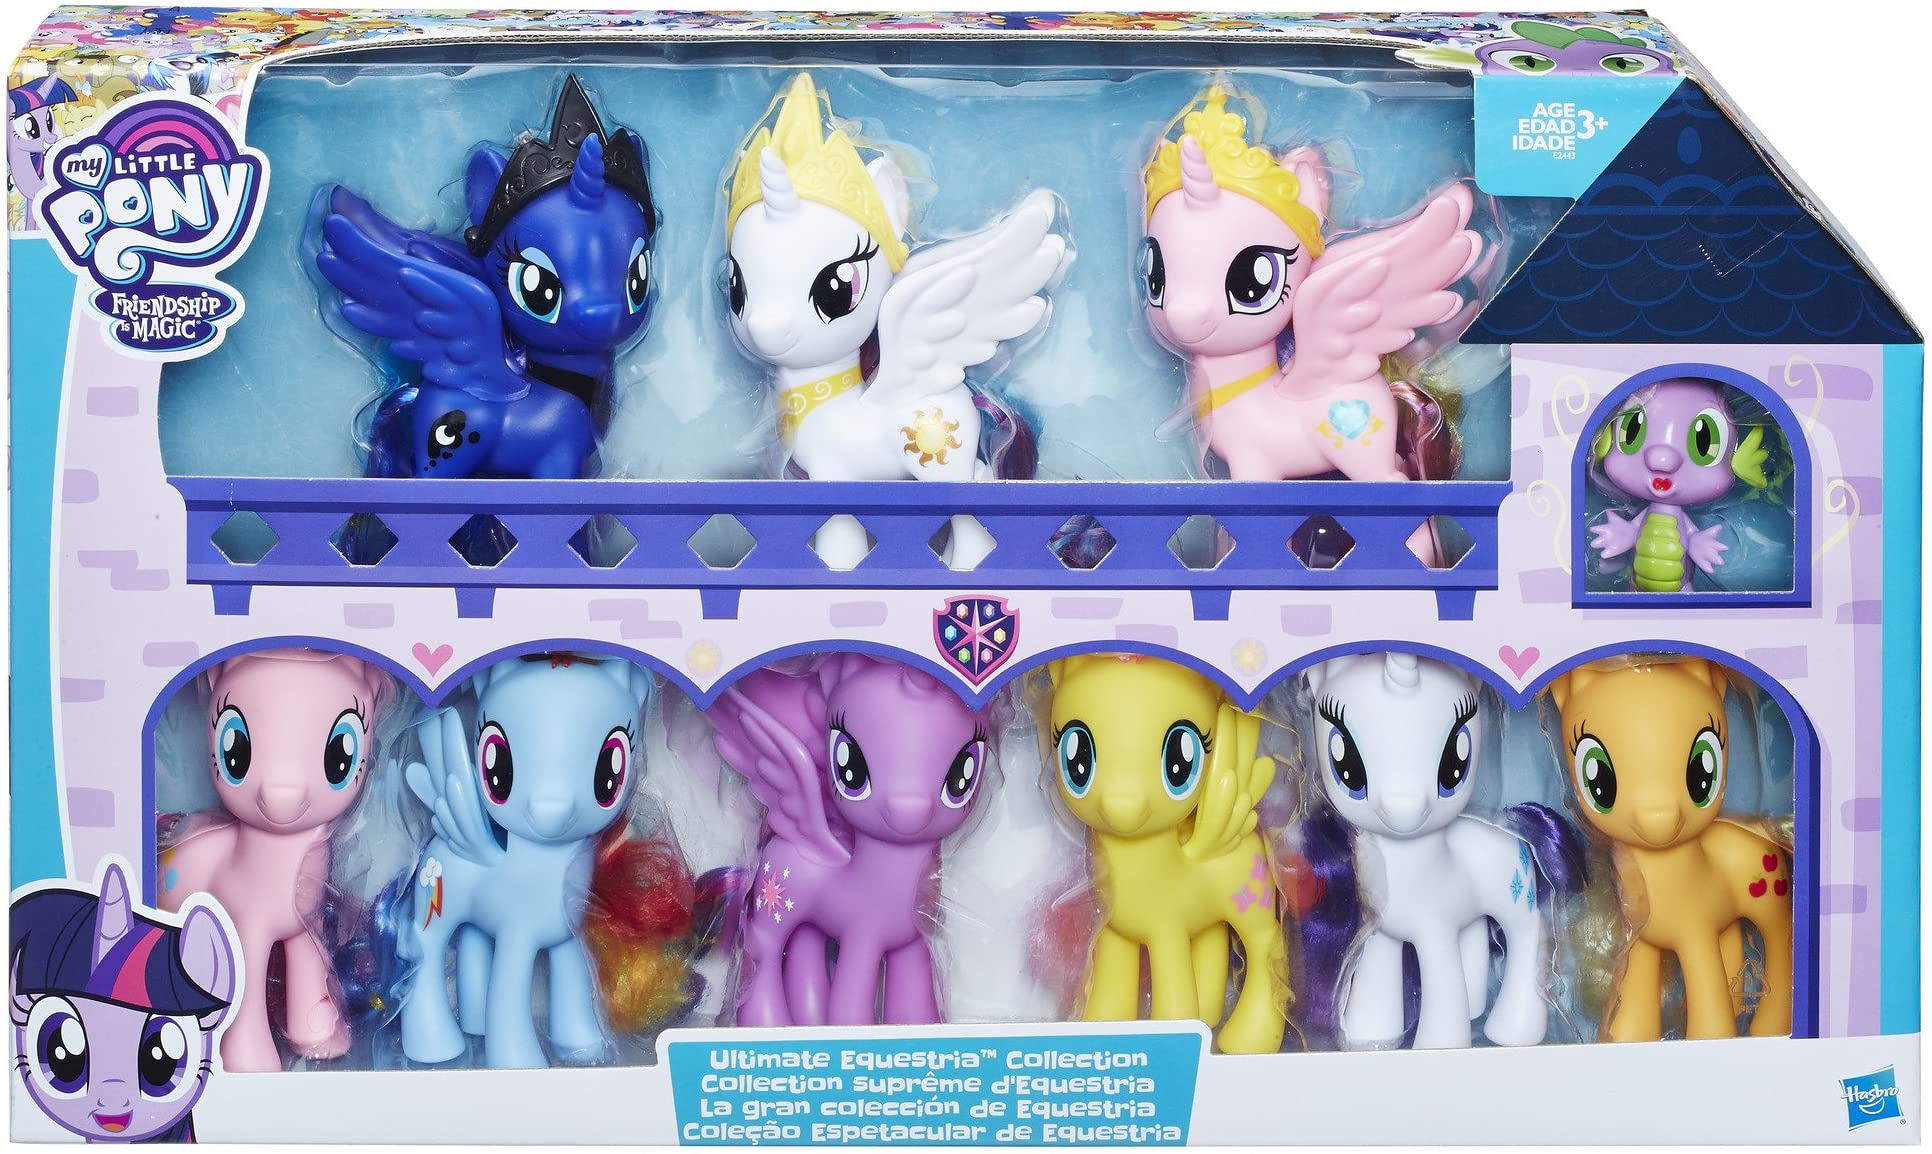 """My Little Pony E2443 Friendship is Magic Toys Ultimate Equestria Collection Spike the Dragon """" Kids Ages 3 and Up, Multicolor"""